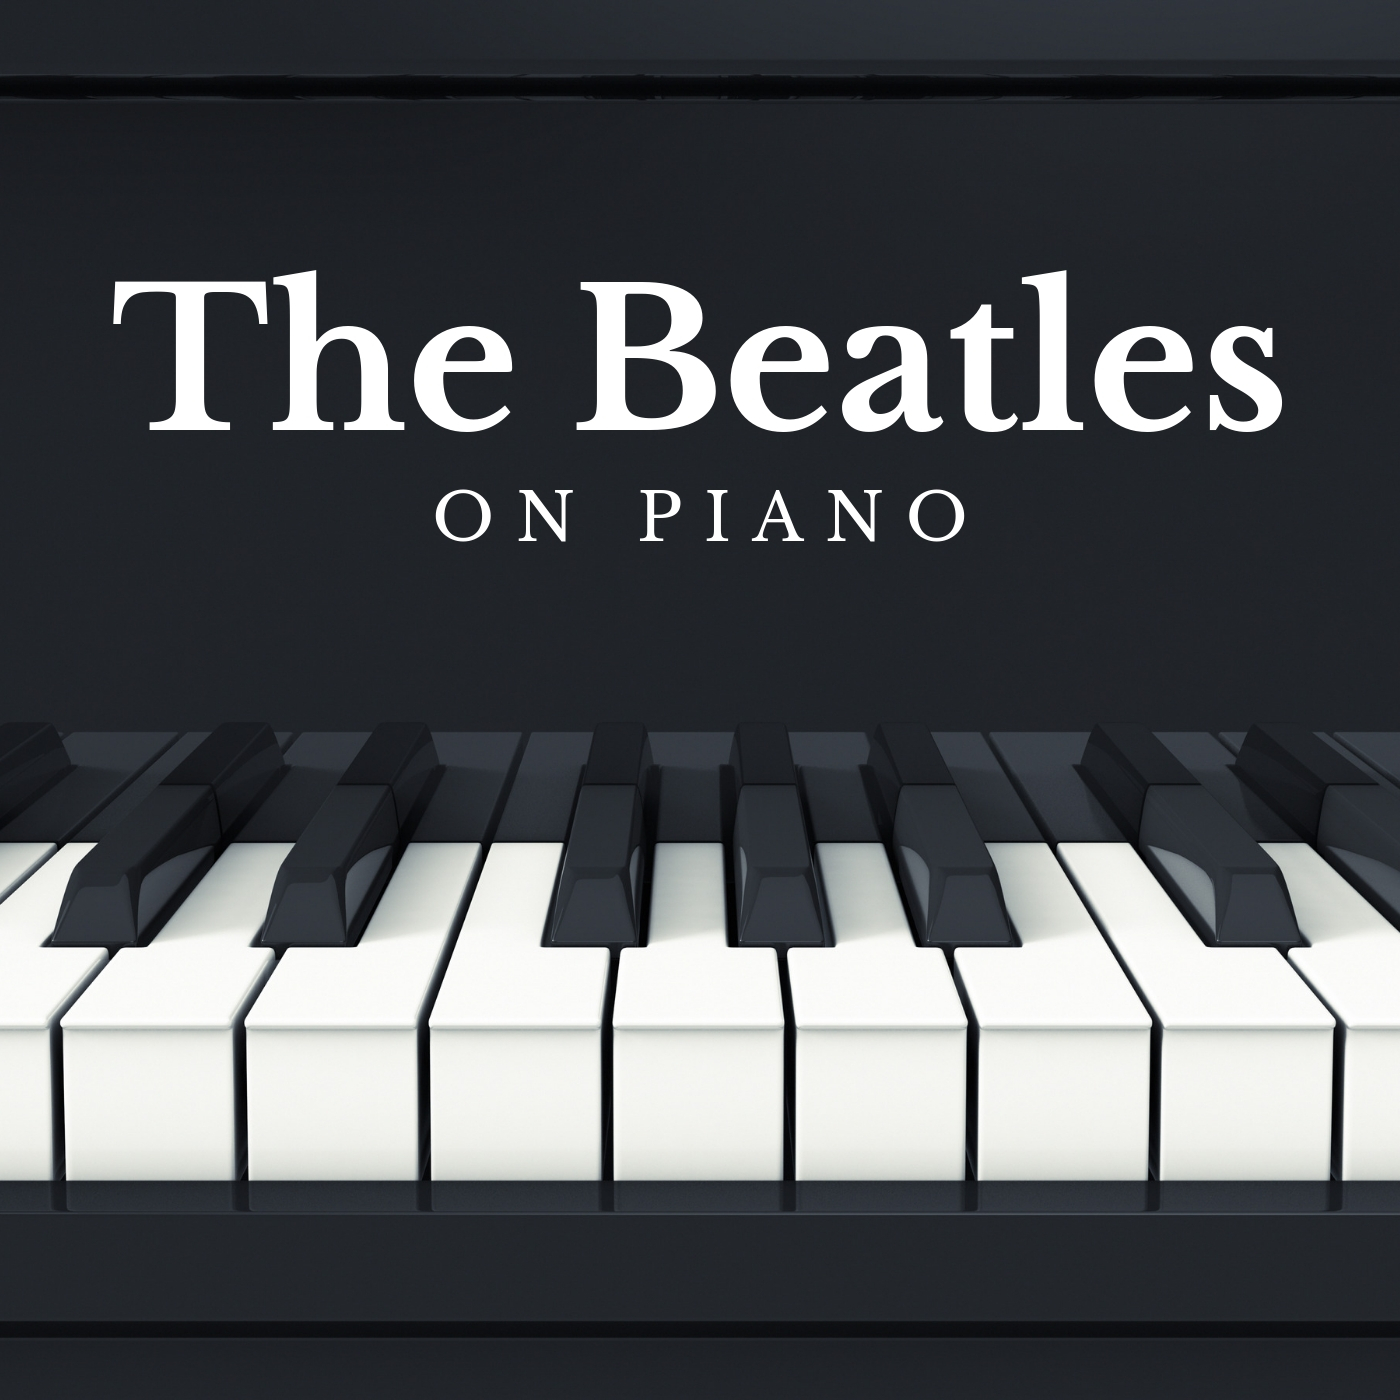 The Beatles on Piano